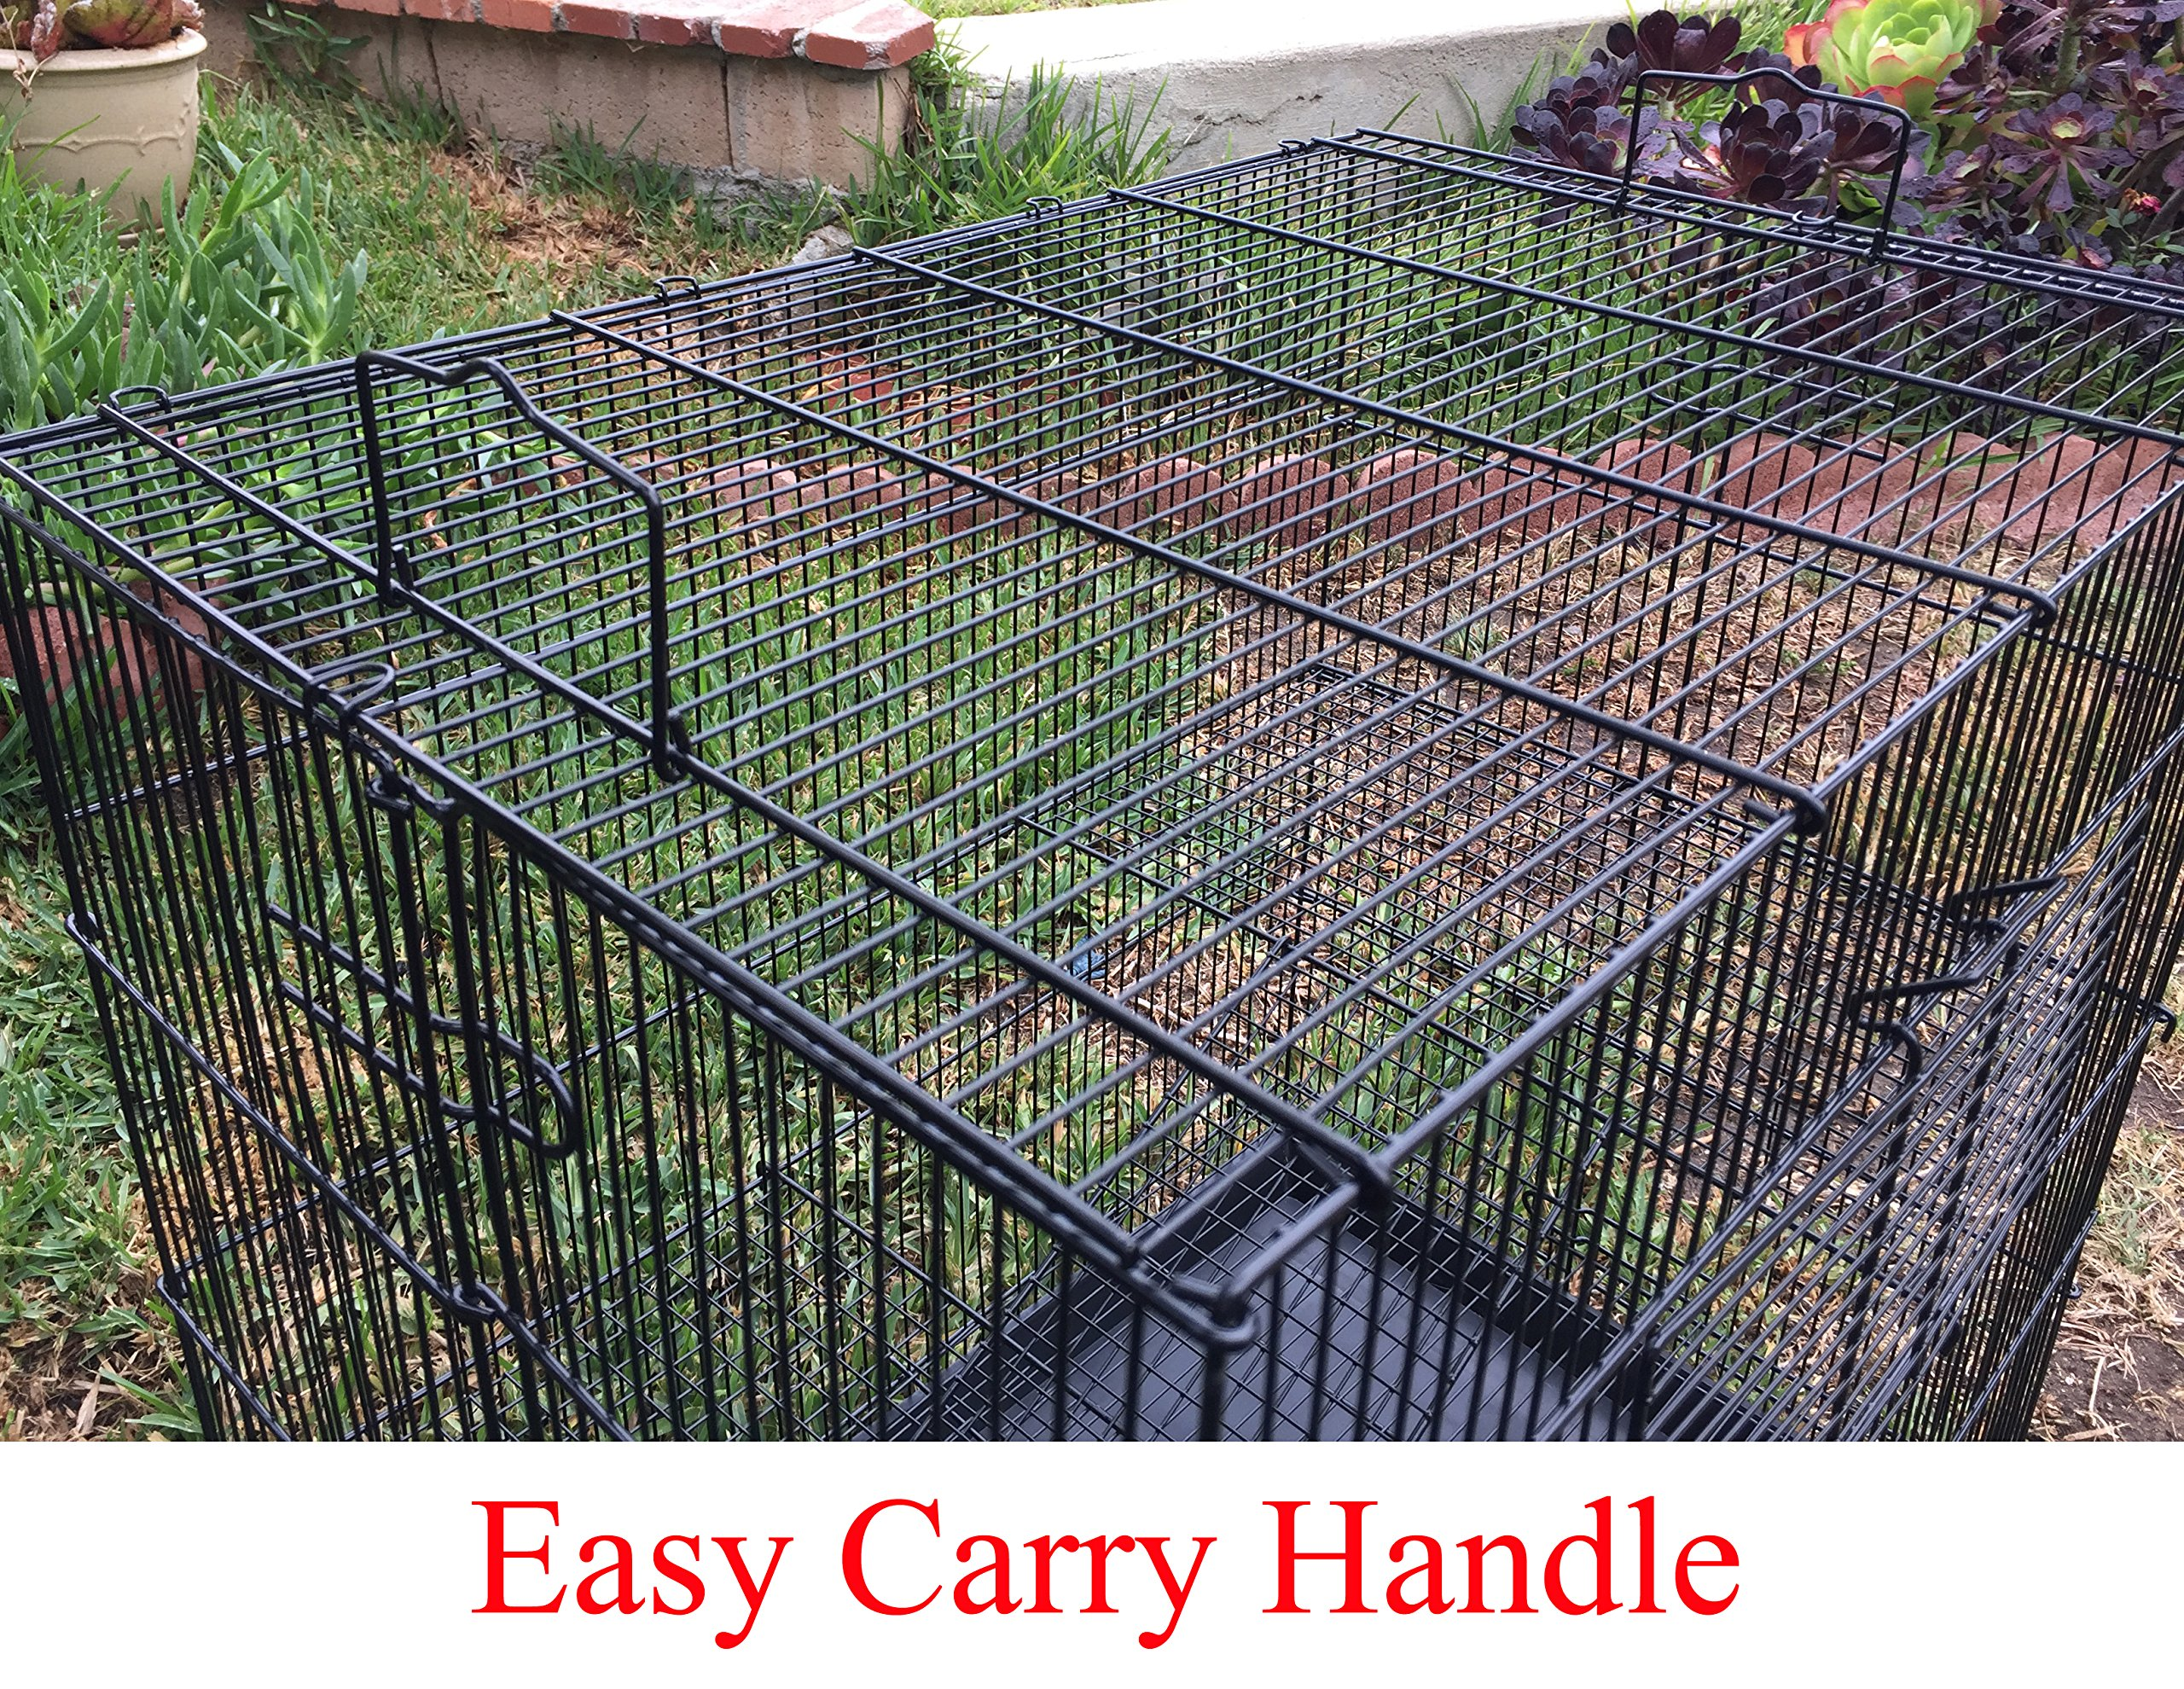 New Medium 3 Levels Ferret Chinchilla Sugar Glider Cage 24'' Length x 16'' Depth x 24'' Height by Mcage (Image #5)